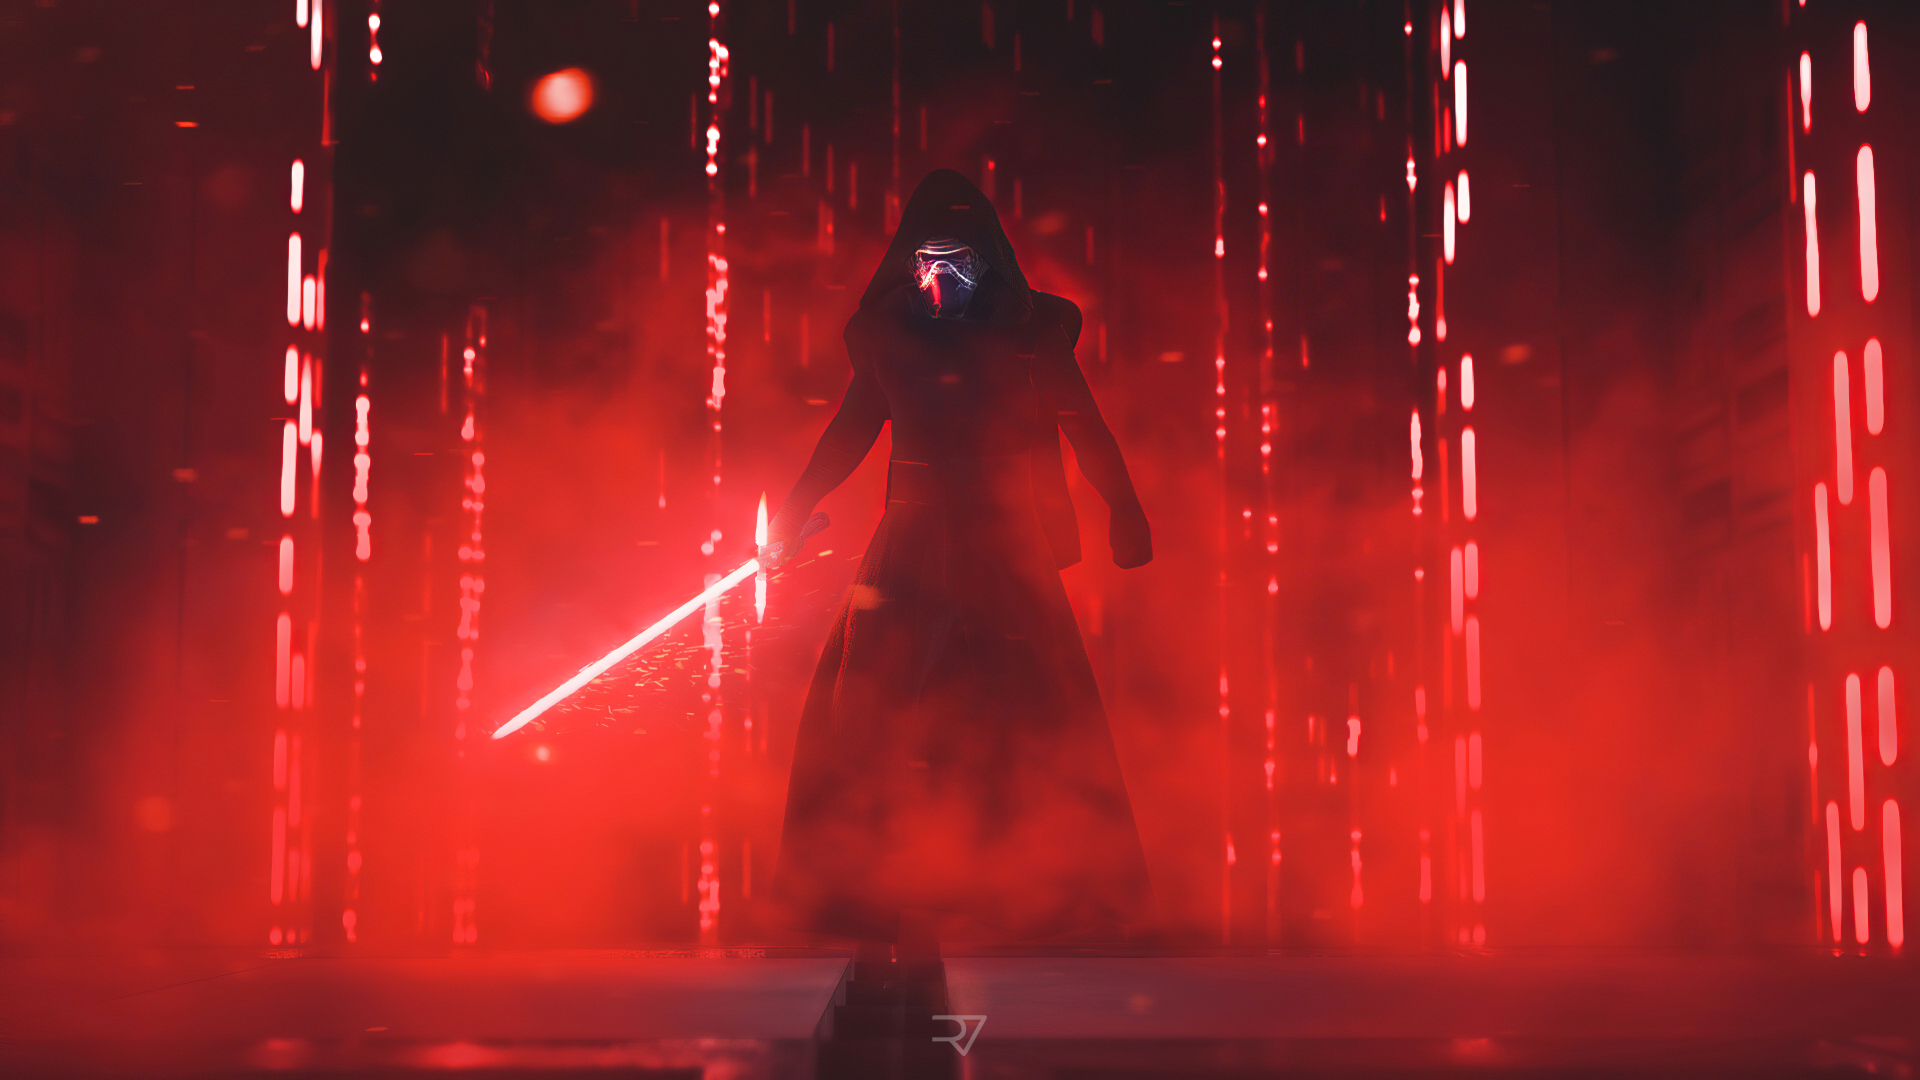 2560x1024 4k Darth Vader 2019 2560x1024 Resolution Wallpaper Hd Movies 4k Wallpapers Images Photos And Background